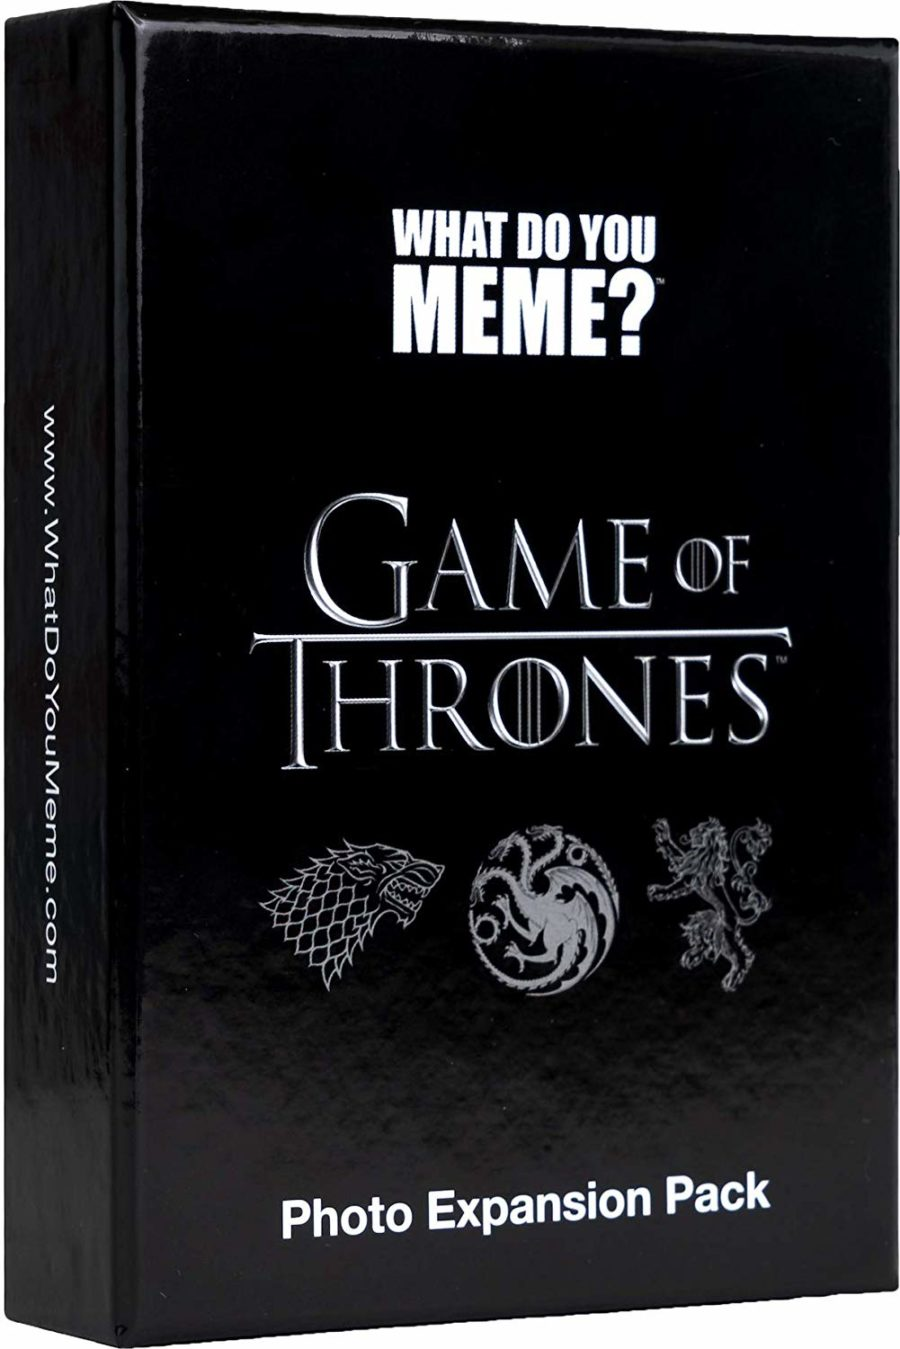 Game of Thrones game and other St. Patrick's Day activities